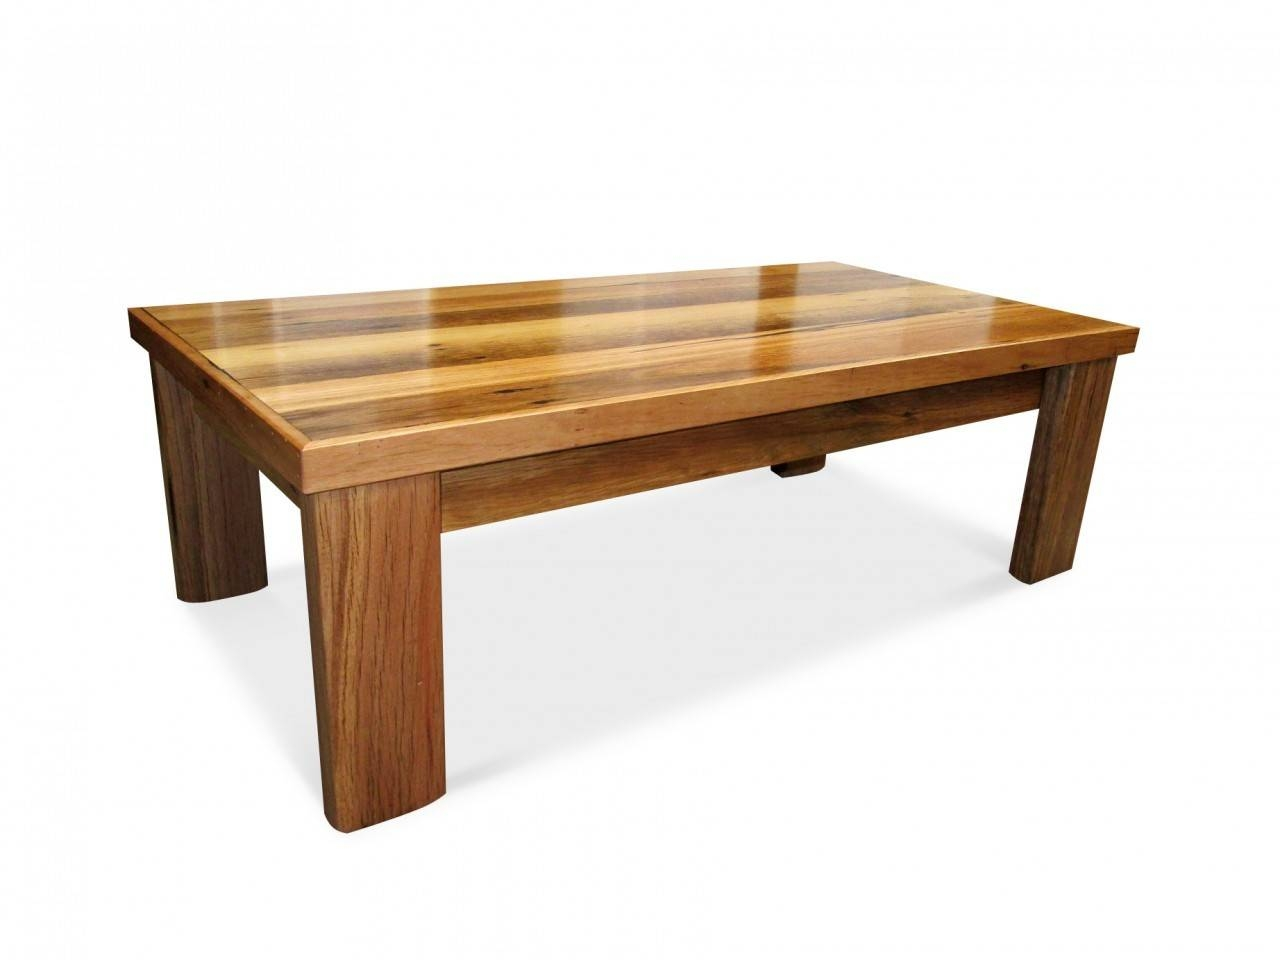 Rounded Corners Of Short Coffee Table Coffee Tables Ideas Wood intended for Rounded Corner Coffee Tables (Image 23 of 30)